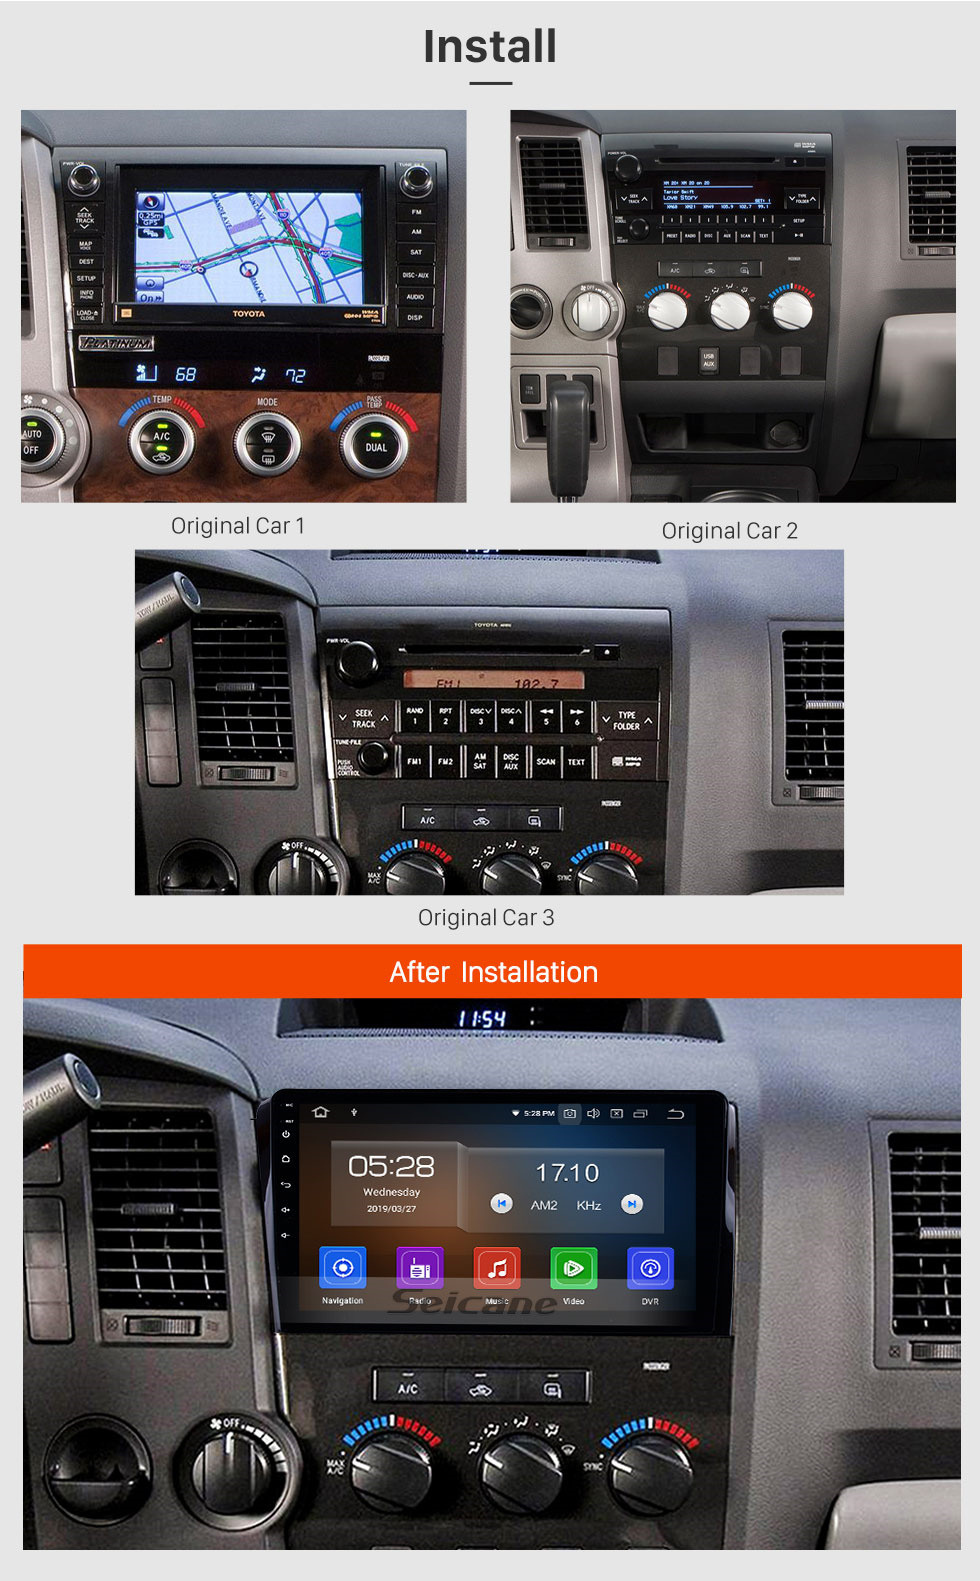 Seicane OEM 10.1 inch Android 10.0 for 2006-2014 Toyota Sequoia Radio GPS Navigation System with HD Touch Screen with Bluetooth WiFi Carplay support Backup Camera